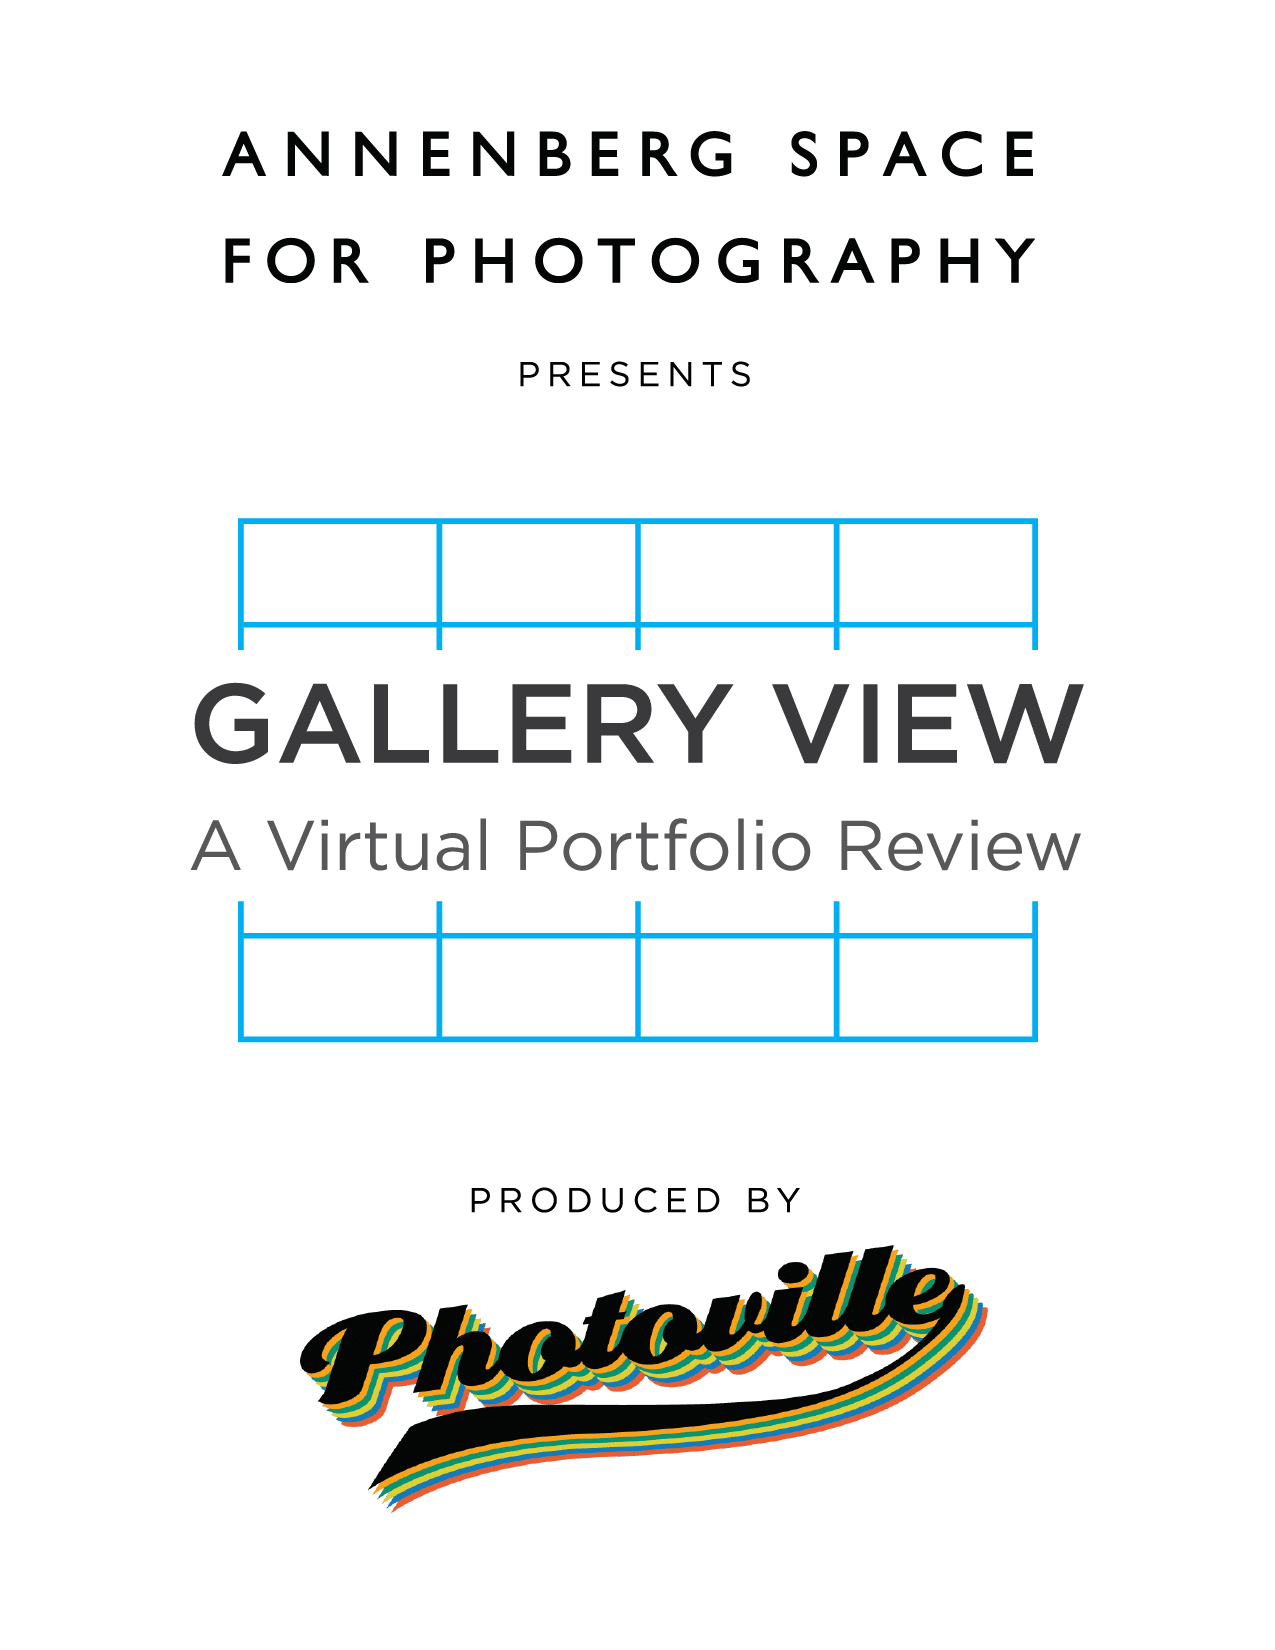 Gallery View: A Virtual Portfolio Review